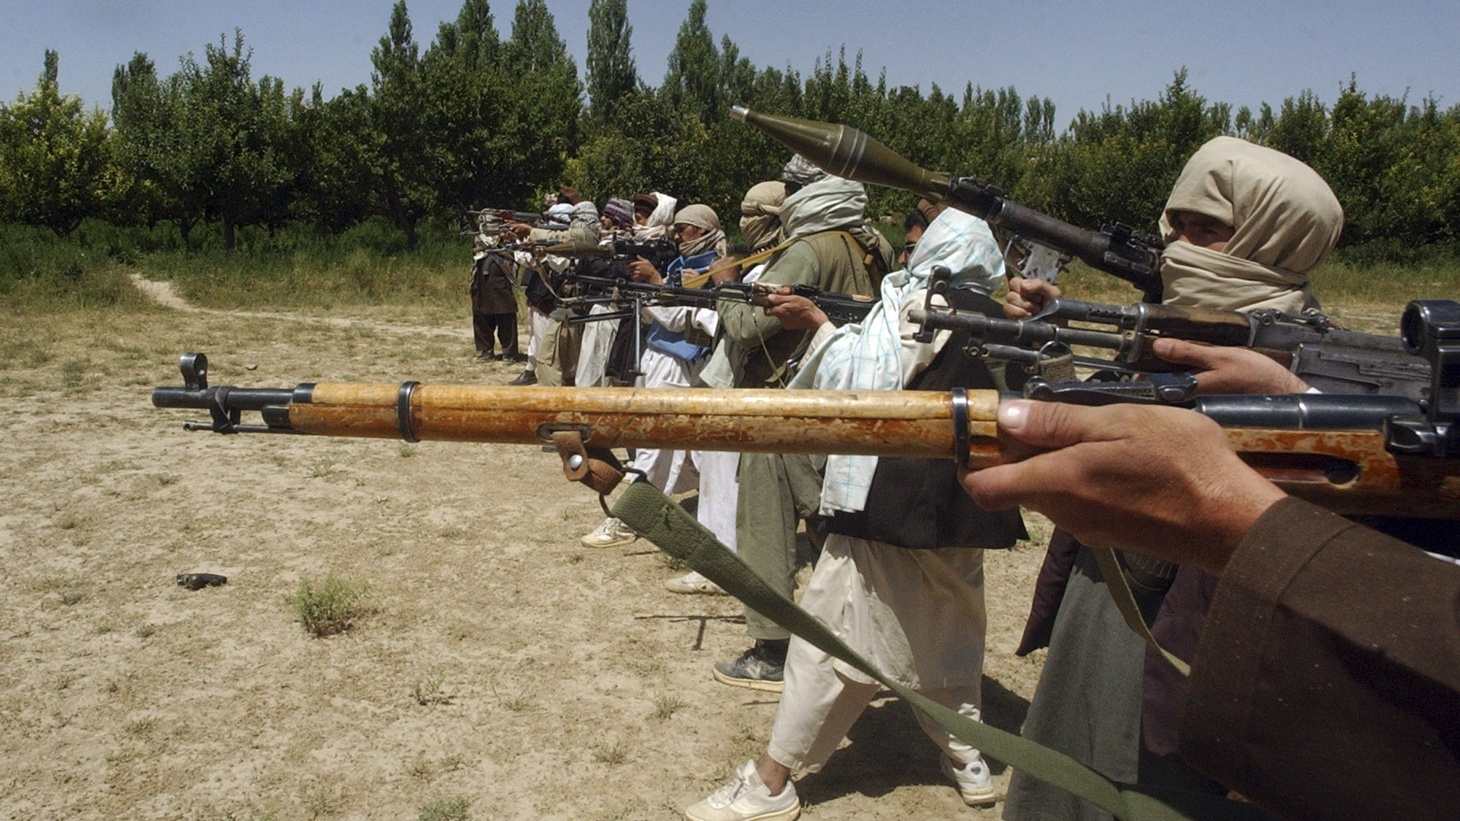 Taliban fighters train with their weapons in an undisclosed location in Afghanistan July 14, 2009.